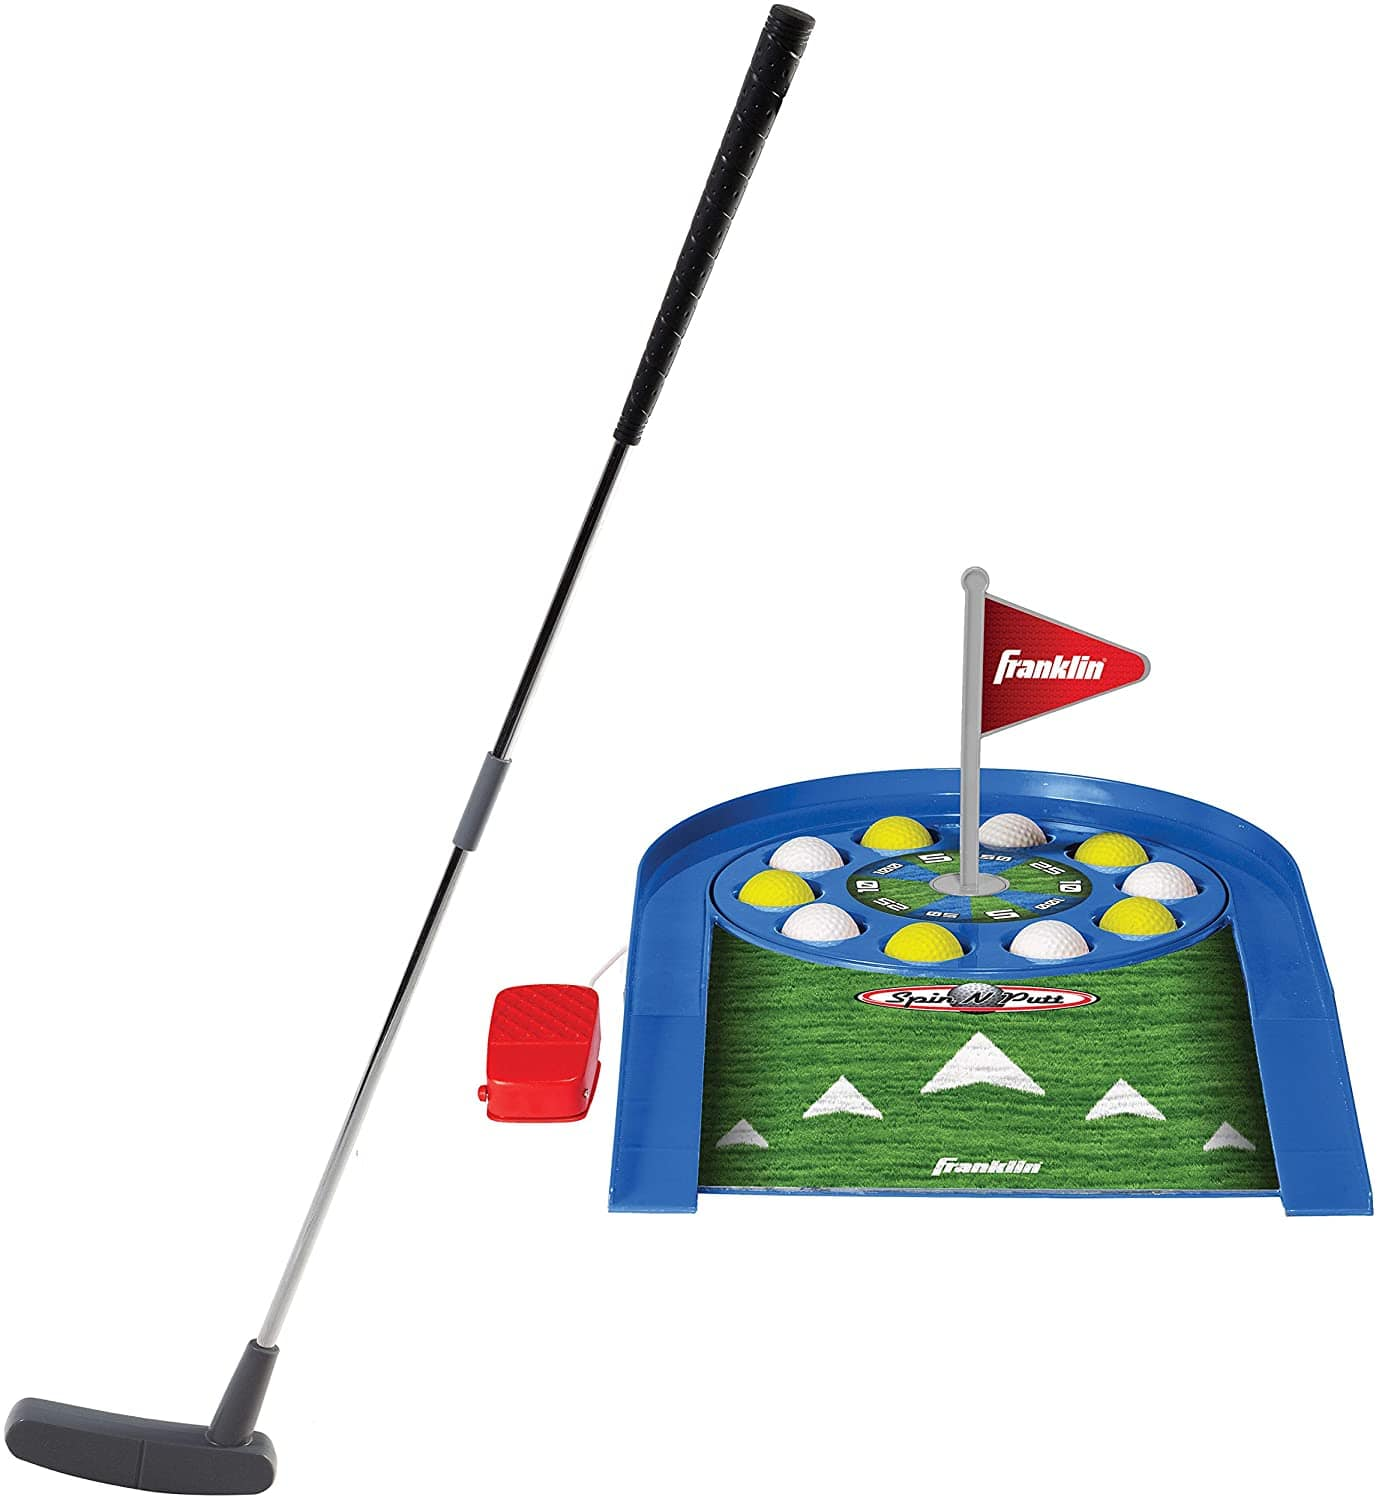 Franklin Sports Spin N Putt Golf Game $19 + Free Ship to Store at Macy's or Free Shipping w/ Prime or on $25+